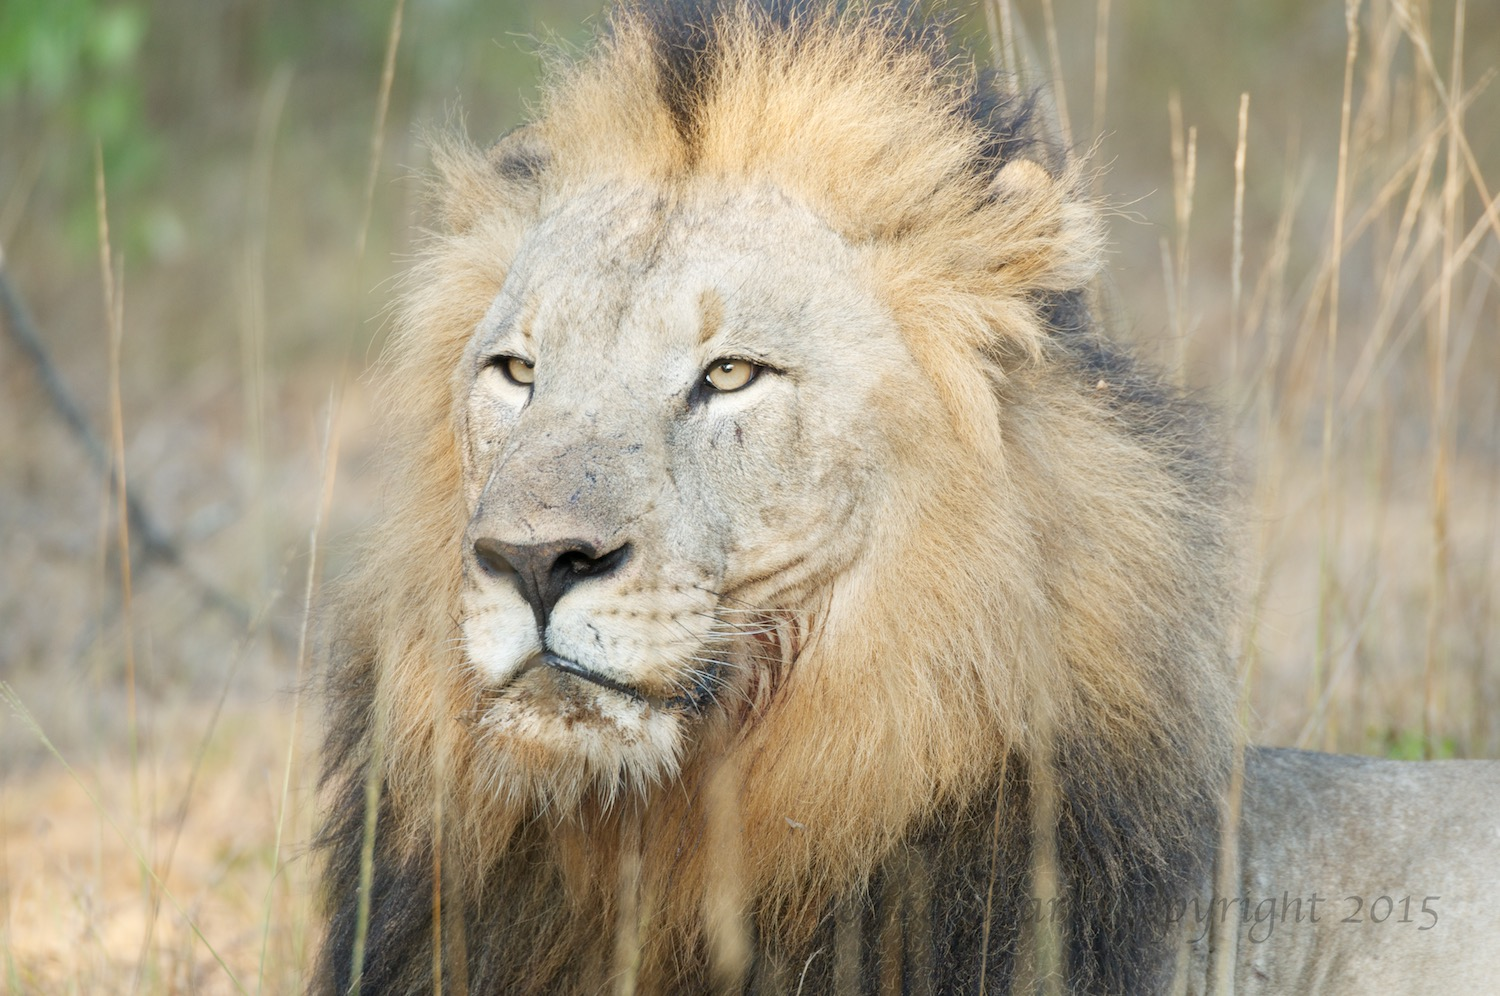 A full lion with a bit of leftovers on his chin.